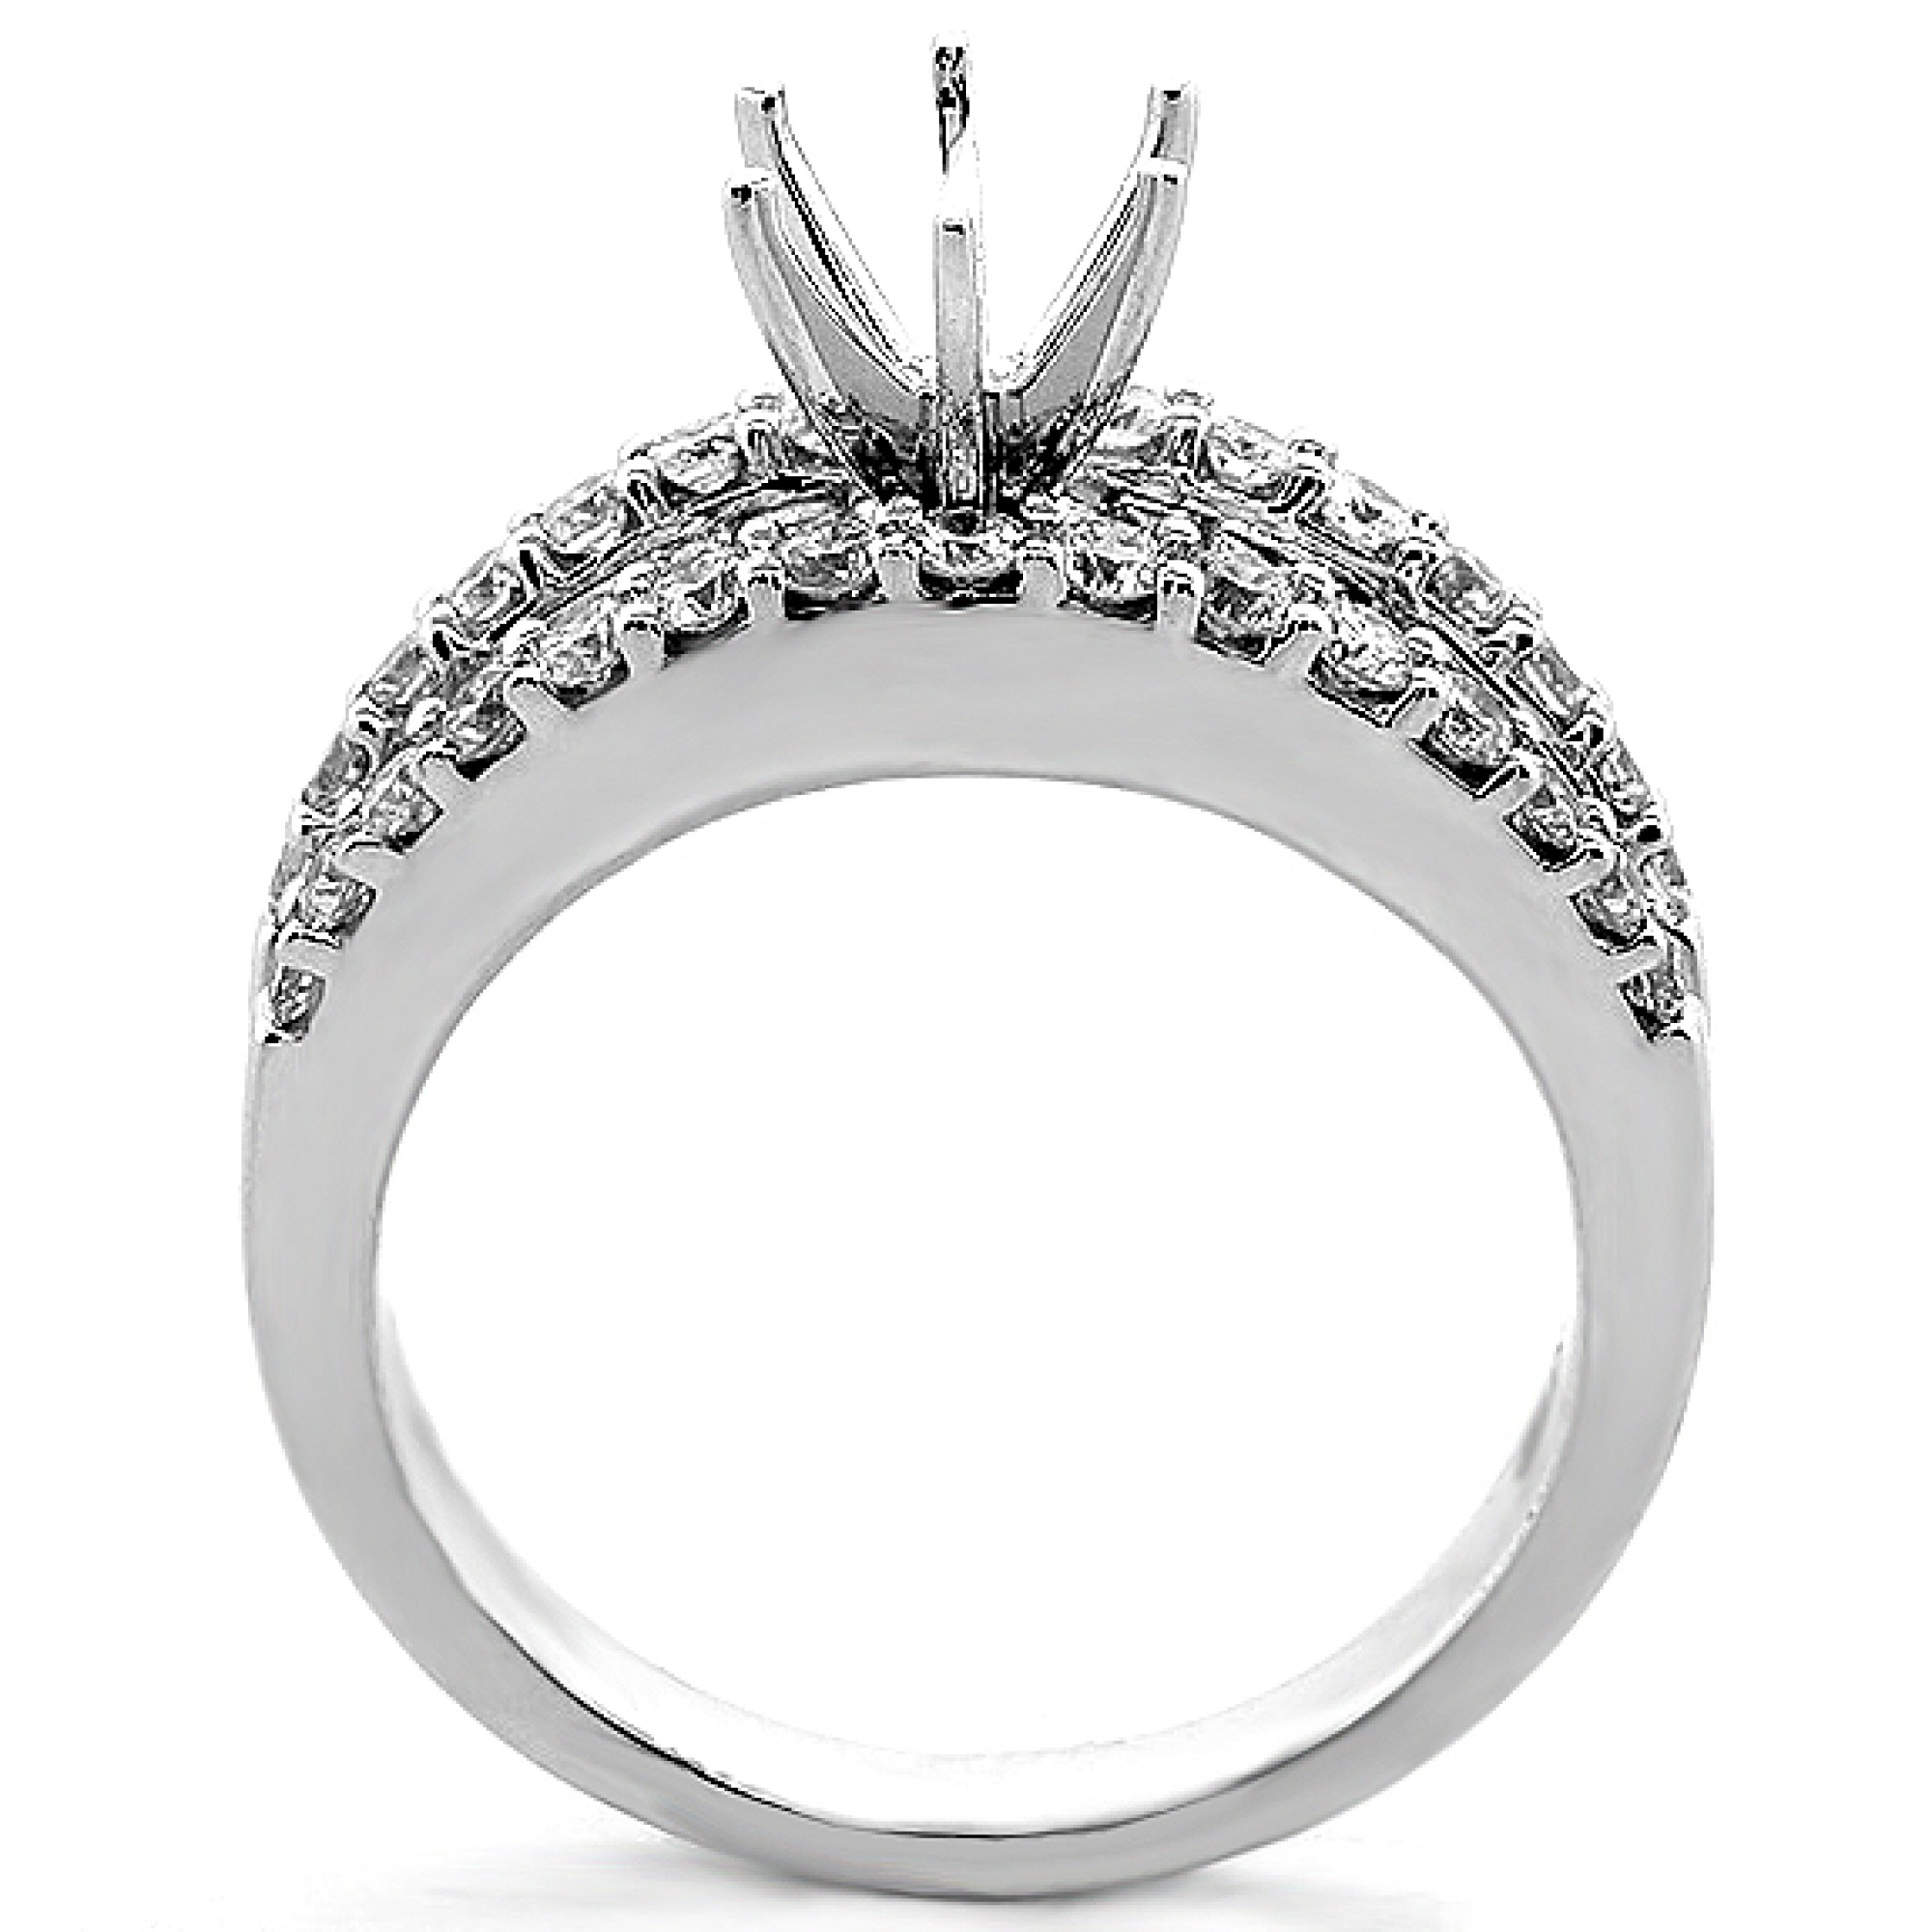 1.36 Cts Baguette and Round Cut Diamond Engagement Ring ...